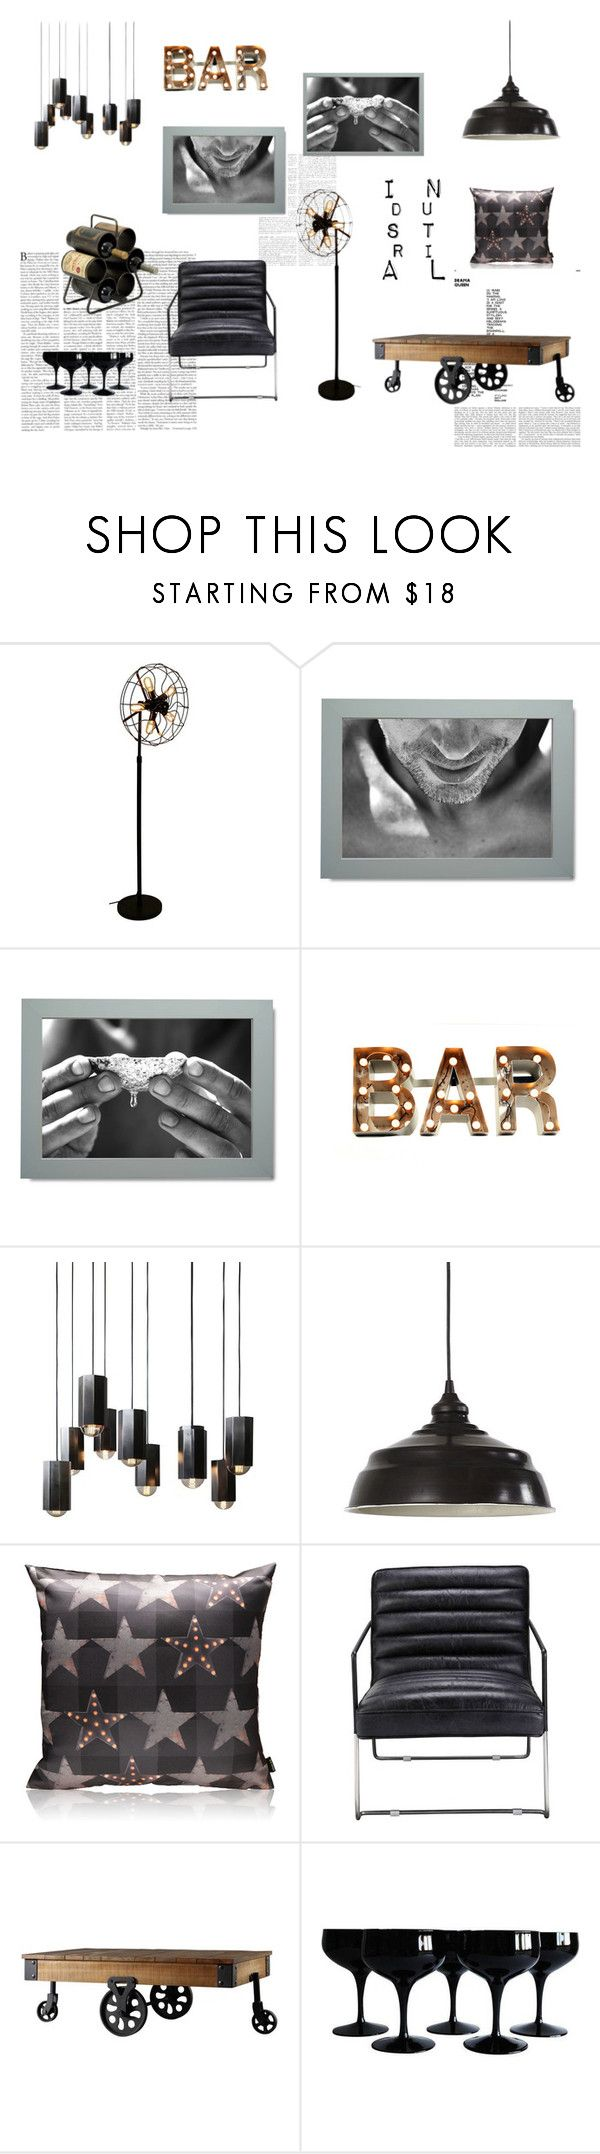 Set inspired by black metals and industrial style. Sit down and enjoy your home bar! Bold black and white wall decor set with man portrait, perfect for minimal or industial style interiors. #wallart #bar #blackandwhite #industrial #walldecor #gallerywall #gallerywallideas #livingroom #gallerywallart